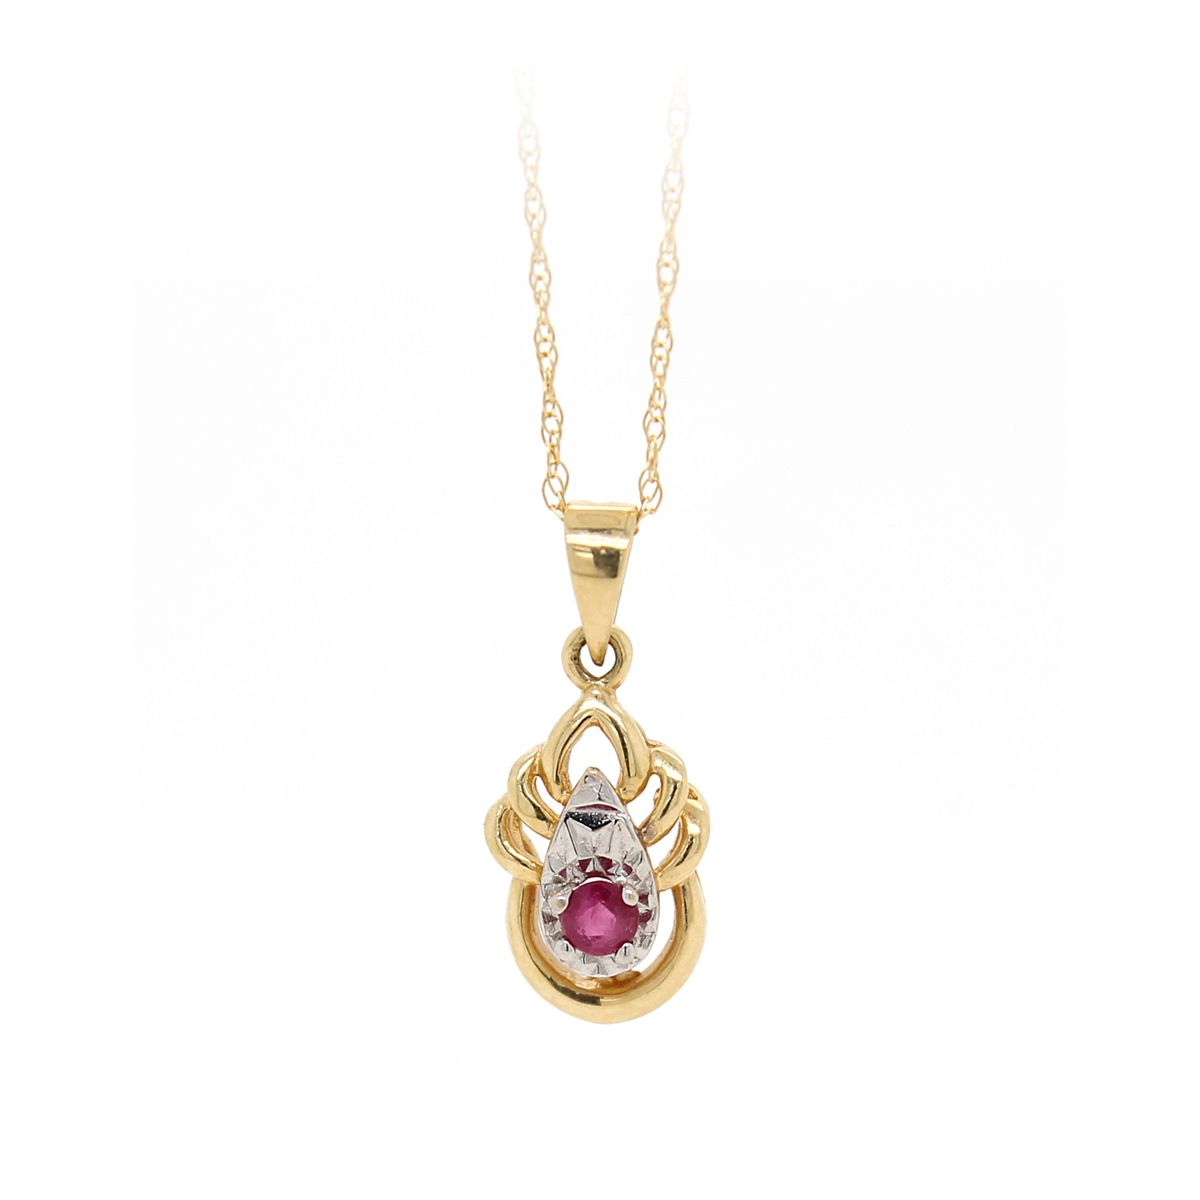 Vintage 14 Karat Rose Gold Ruby Pendant Necklace